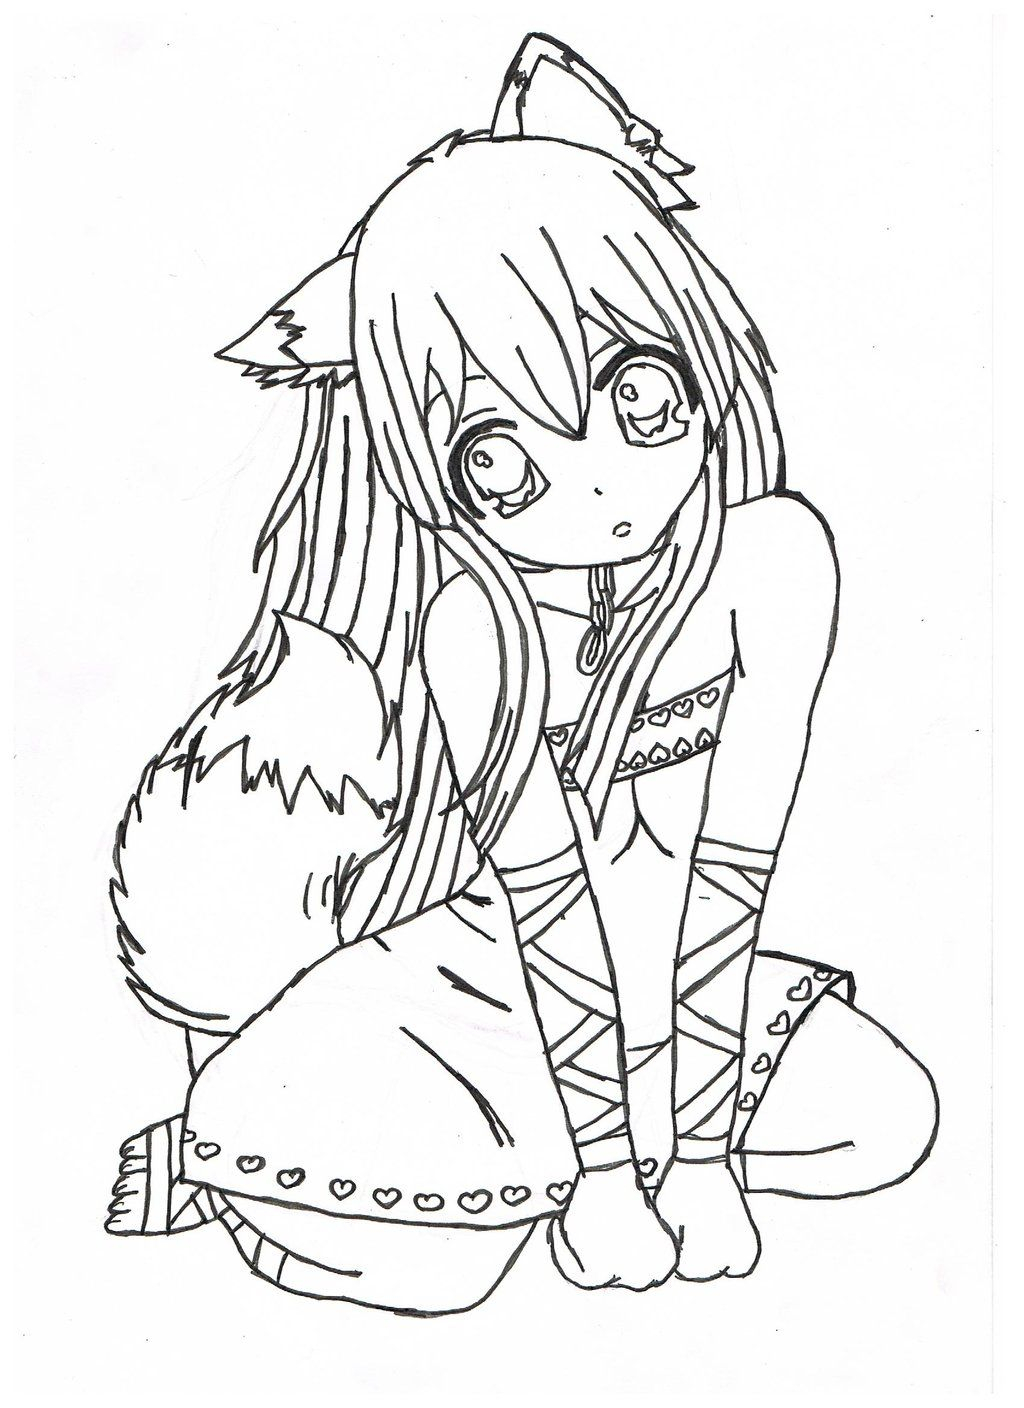 Nice Brilliant Anime Girl Coloring Pages Free Coloring Pages Gallery Of Free Coloring Pages Printable New Kilari and Seiji Anime Coloring Printable